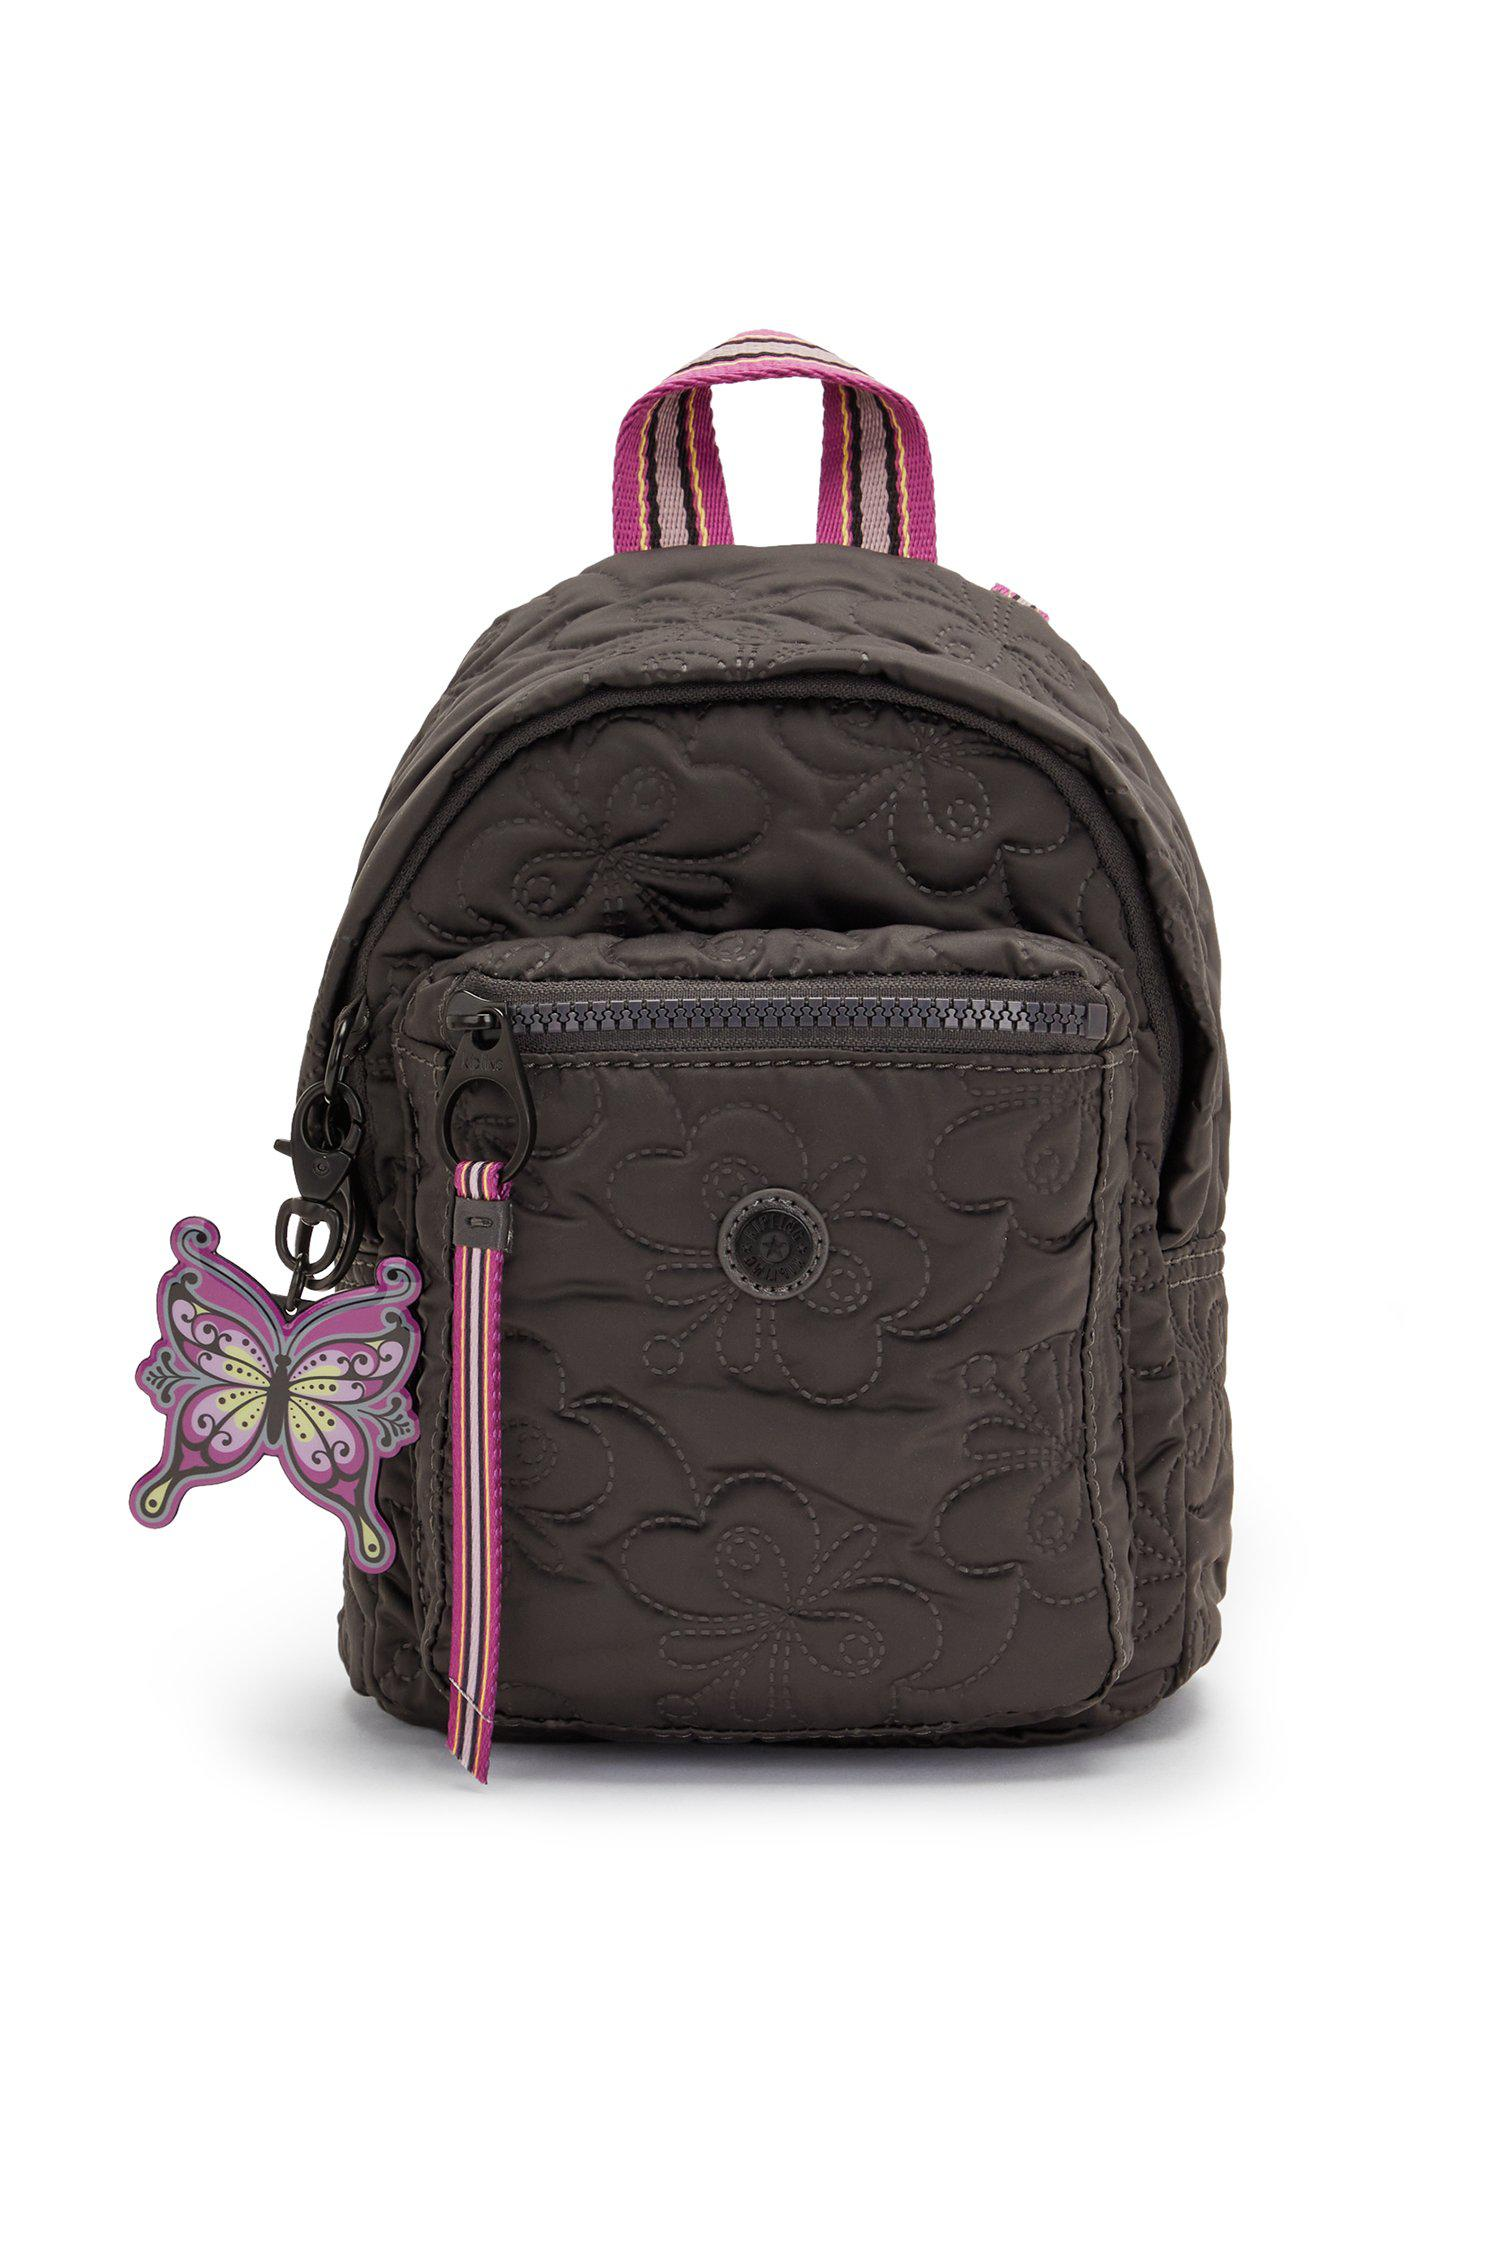 Anna Sui x Kipling Butterfly Quilted Backpack